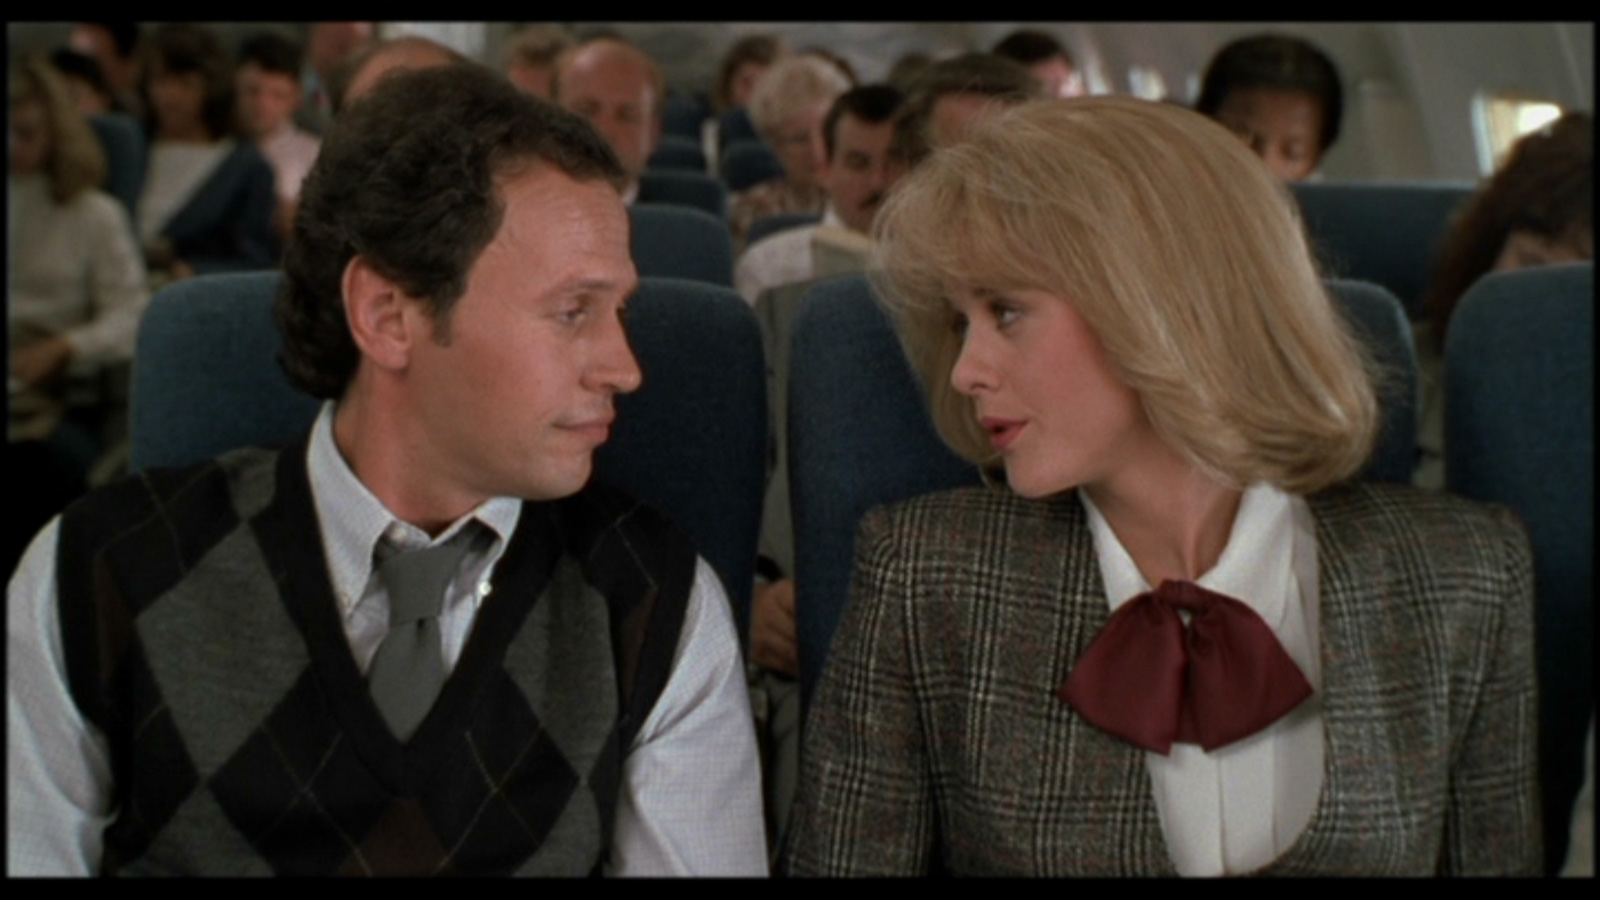 A scene from When Harry Met Sally. Photo credit: Movie Riot.